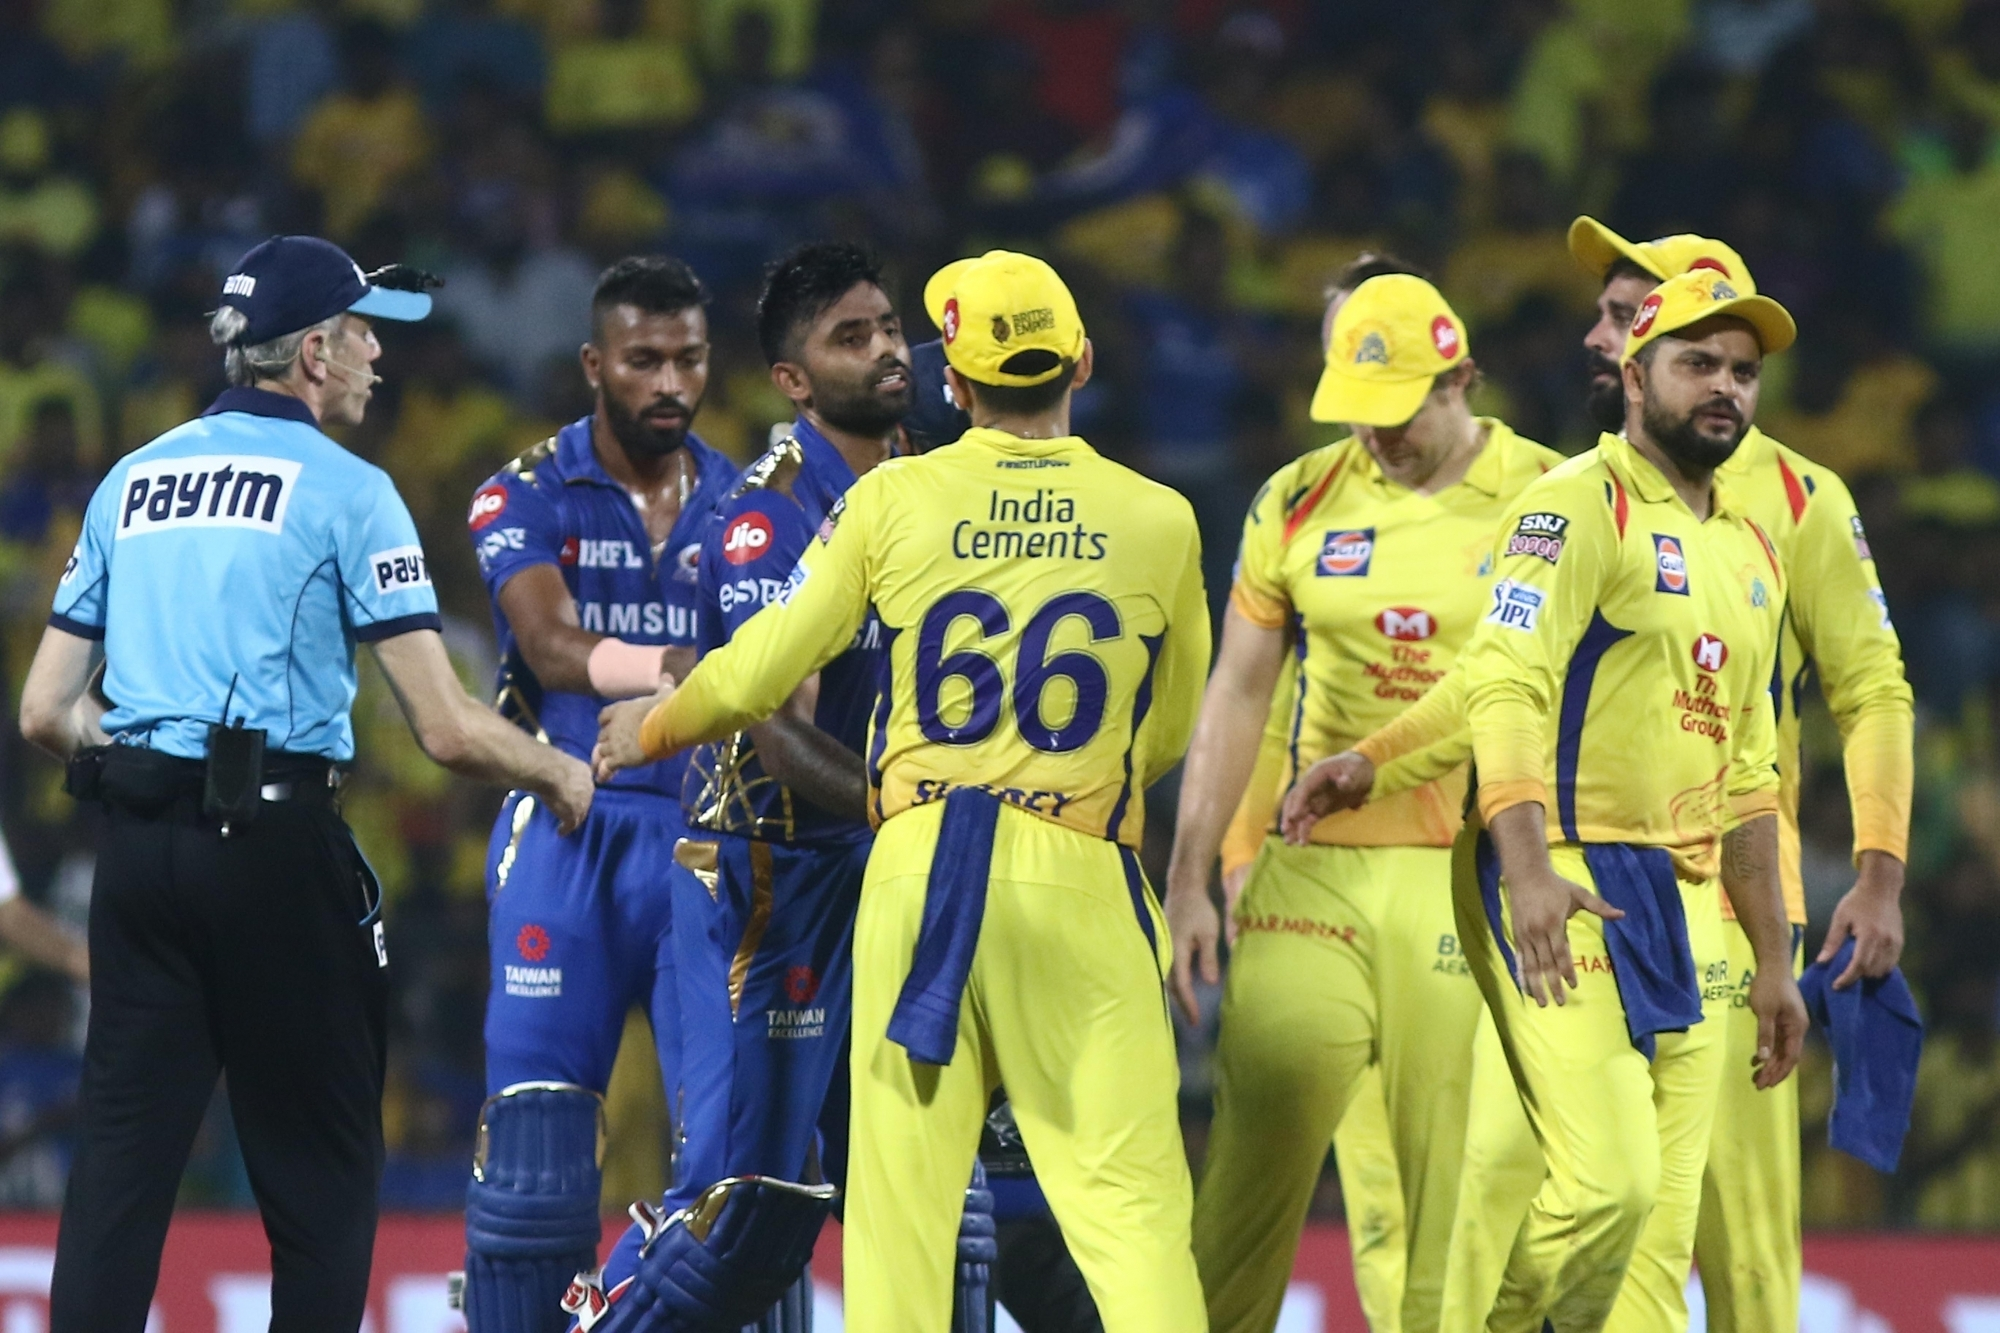 IPL 2020 might get cancelled given the growing COVID-19 cases | IANS